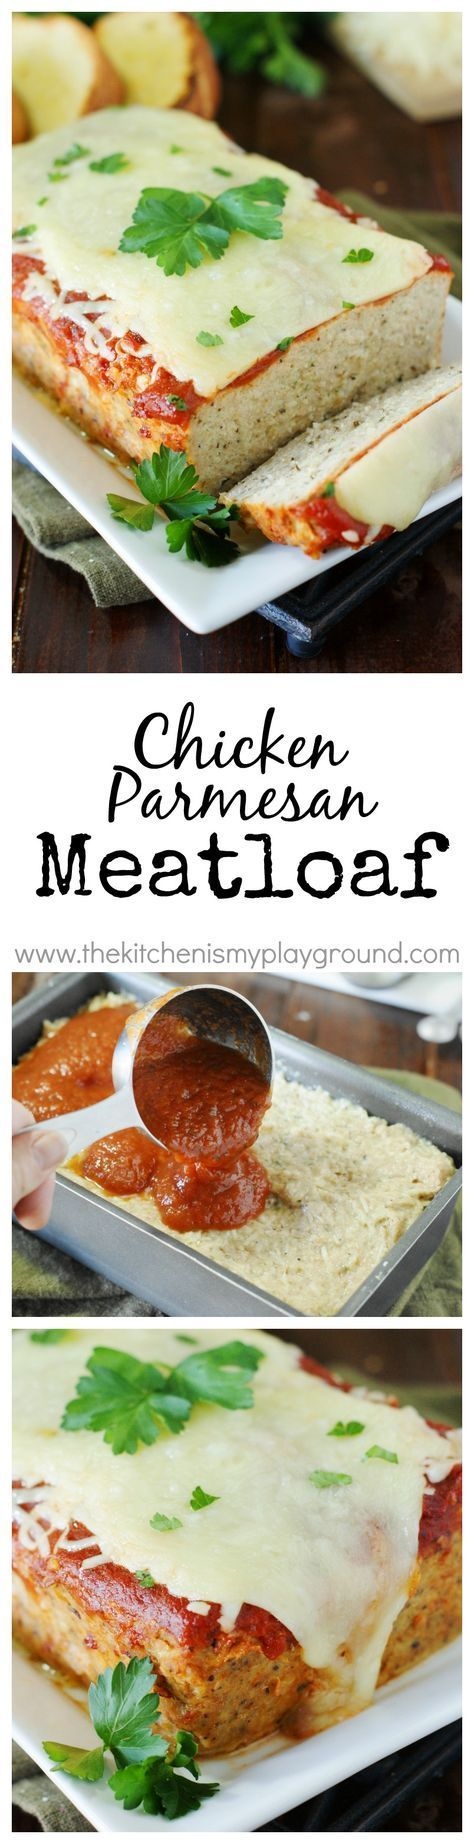 Chicken Parmesan Meatloaf ~ loaded with the flavors of Italian herbs and garlic, topped with sauce and yummy melty cheese. A dinner favorite! www.thekitchenismyplayground.com